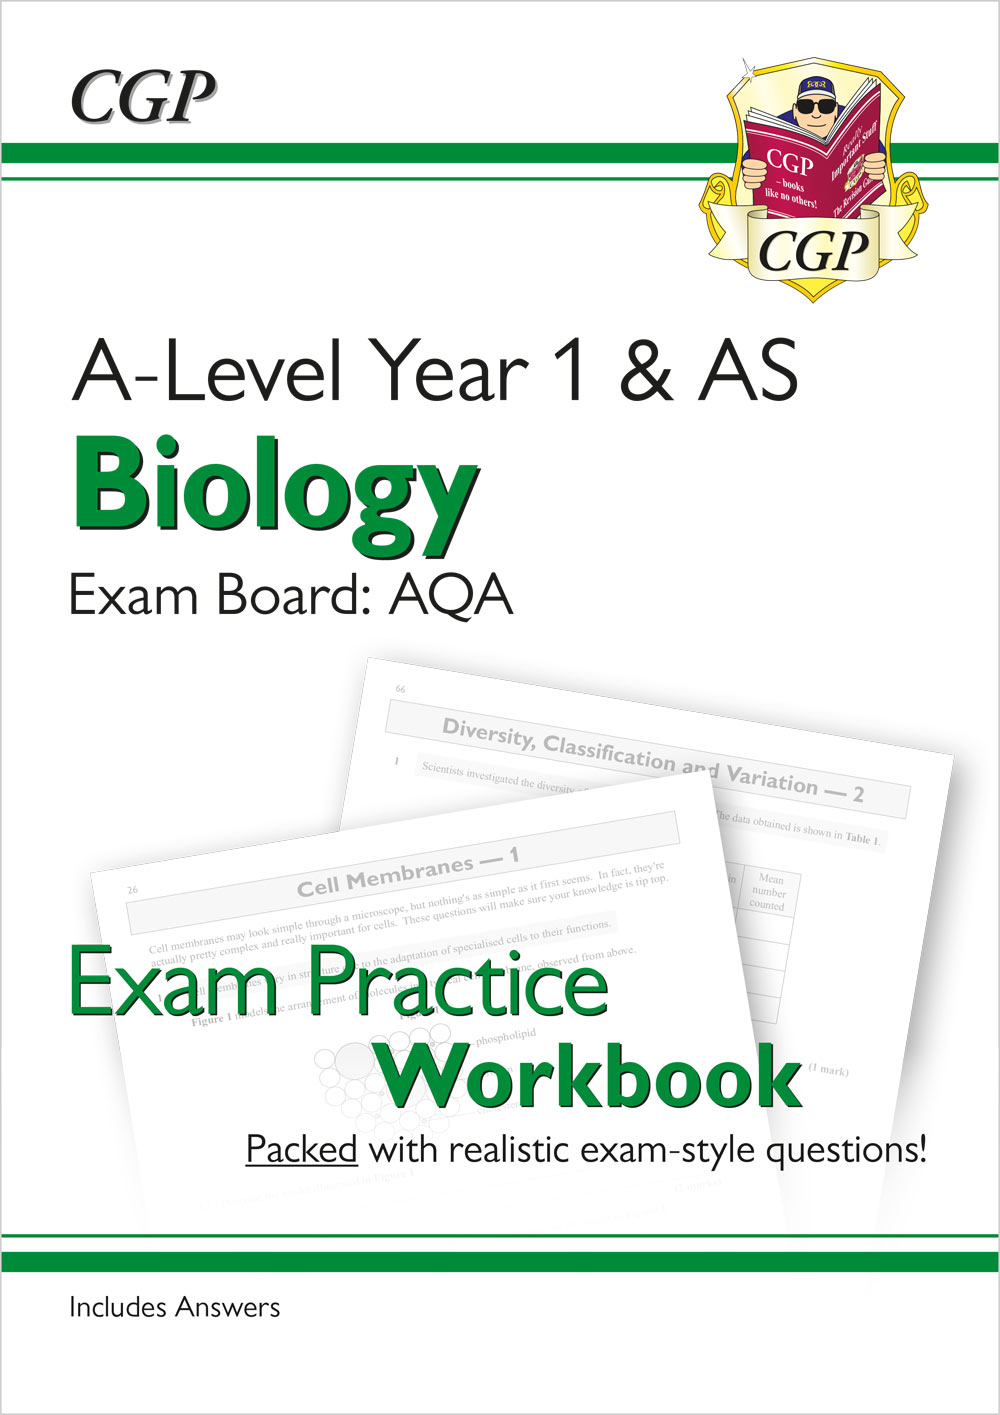 BAQ51 - New A-Level Biology for 2018: AQA Year 1 & AS Exam Practice Workbook - includes Answers